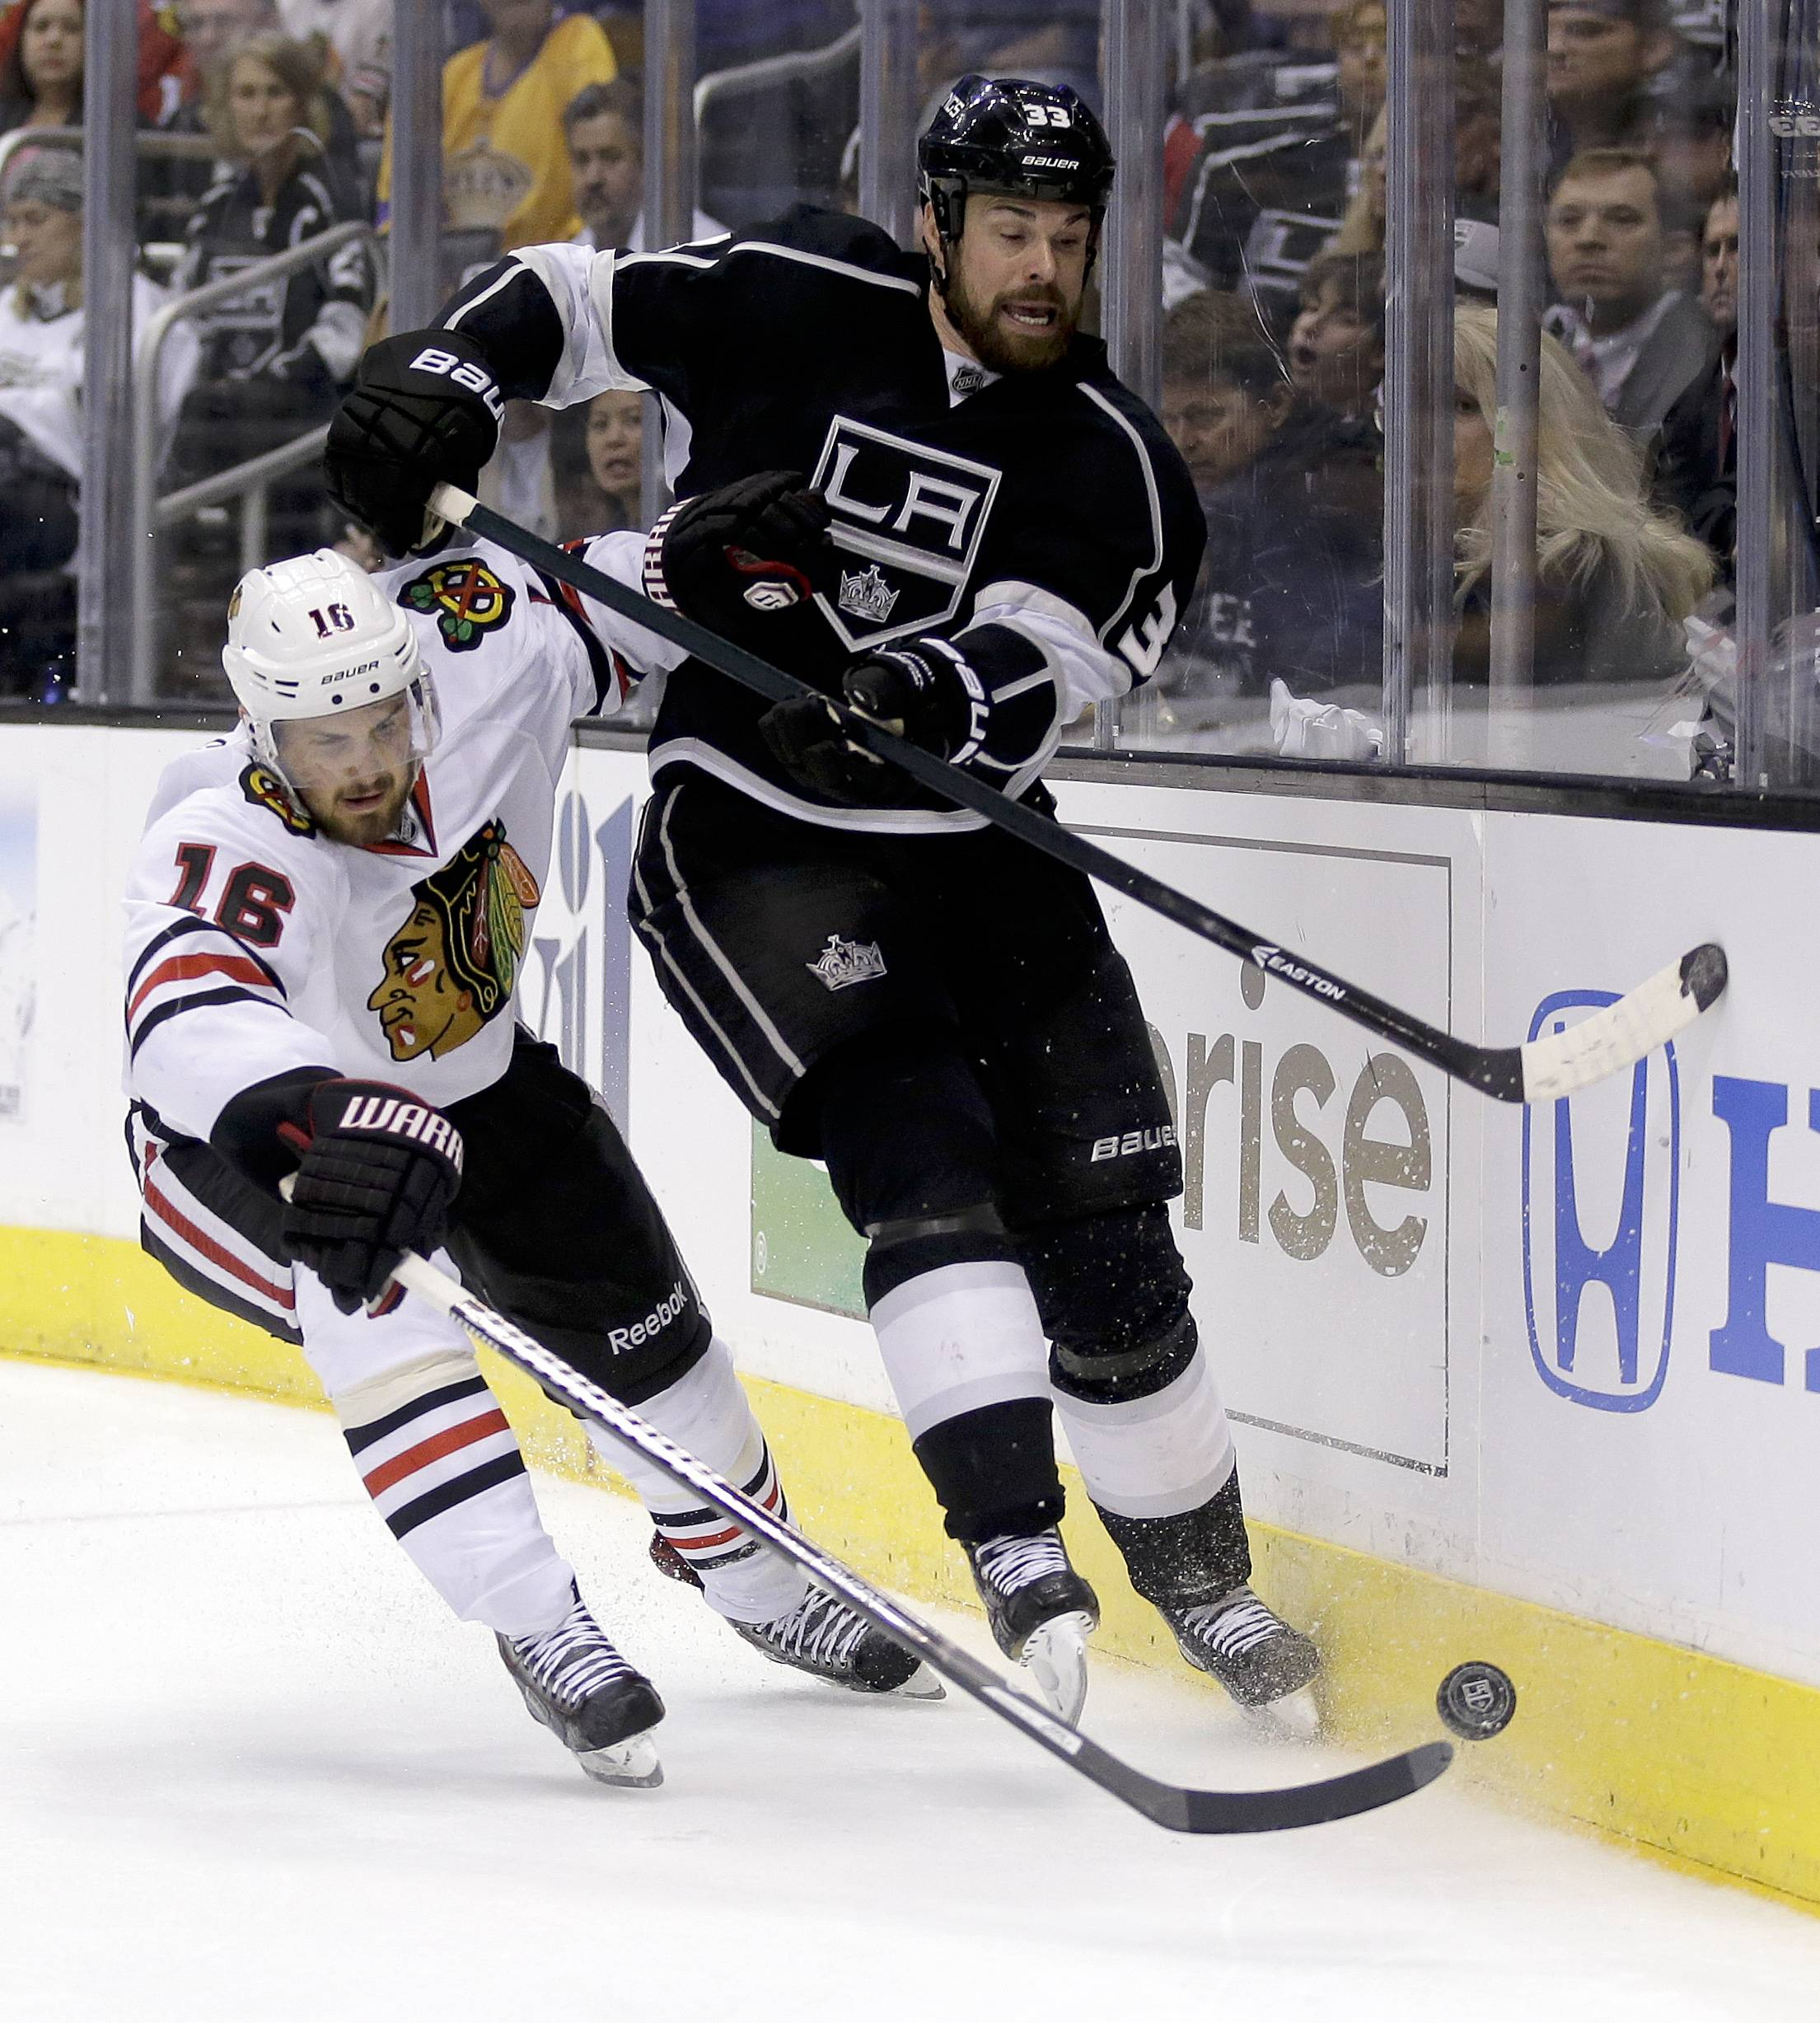 Chicago Blackhawks center Marcus Kruger, left, battles Los Angeles Kings defenseman Willie Mitchell for the puck during  the third period .